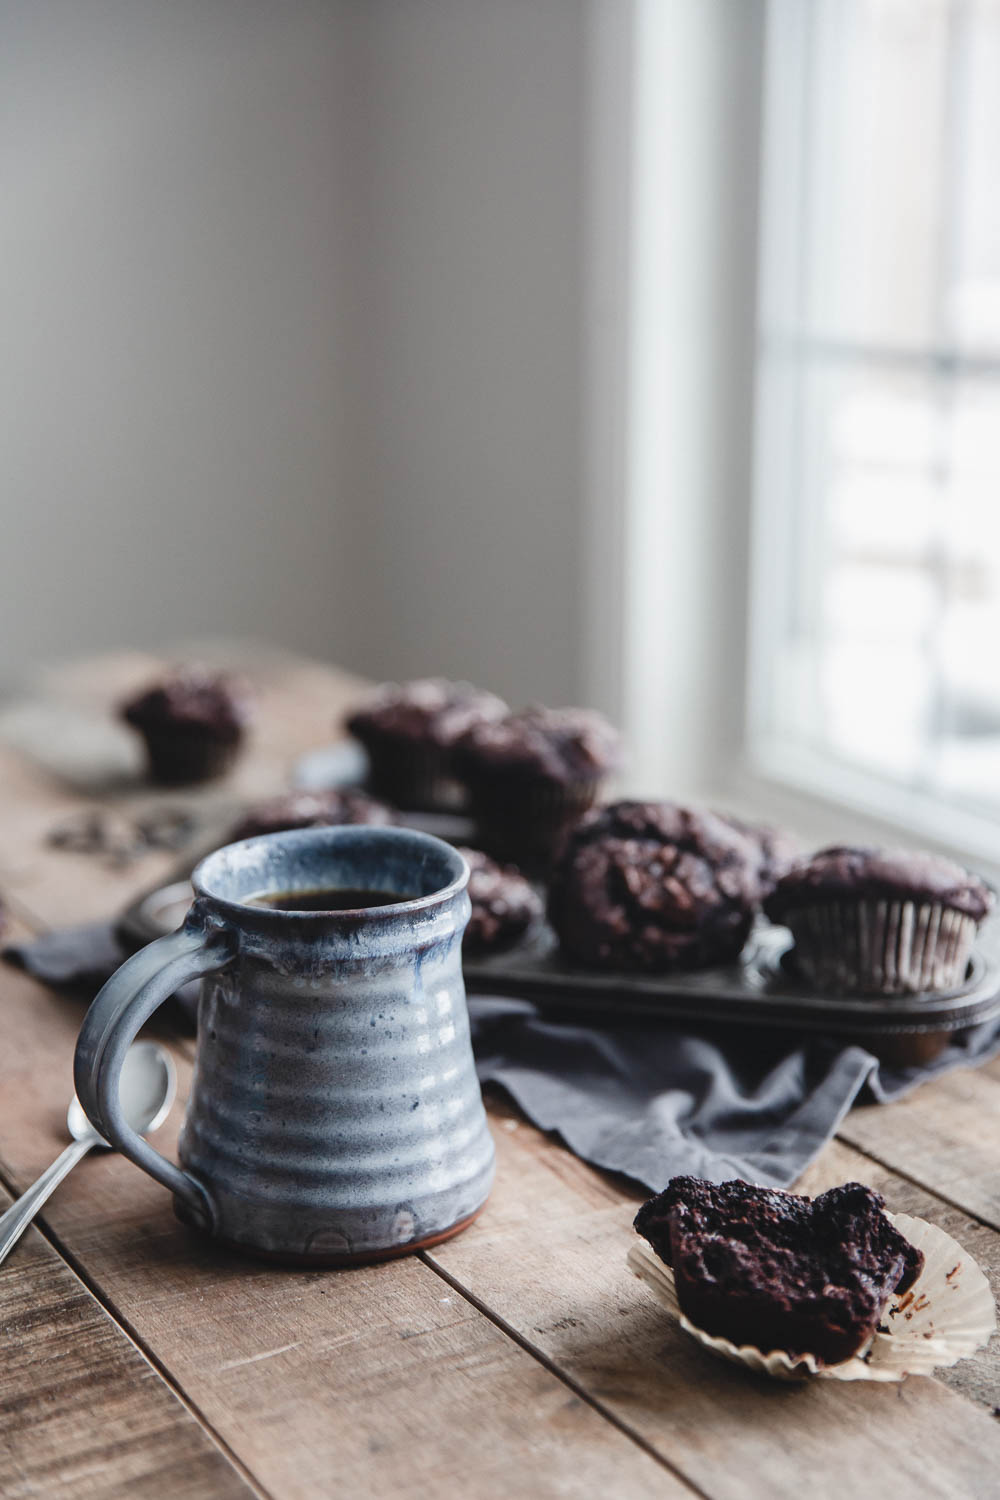 Chocolate muffins on a winter morning